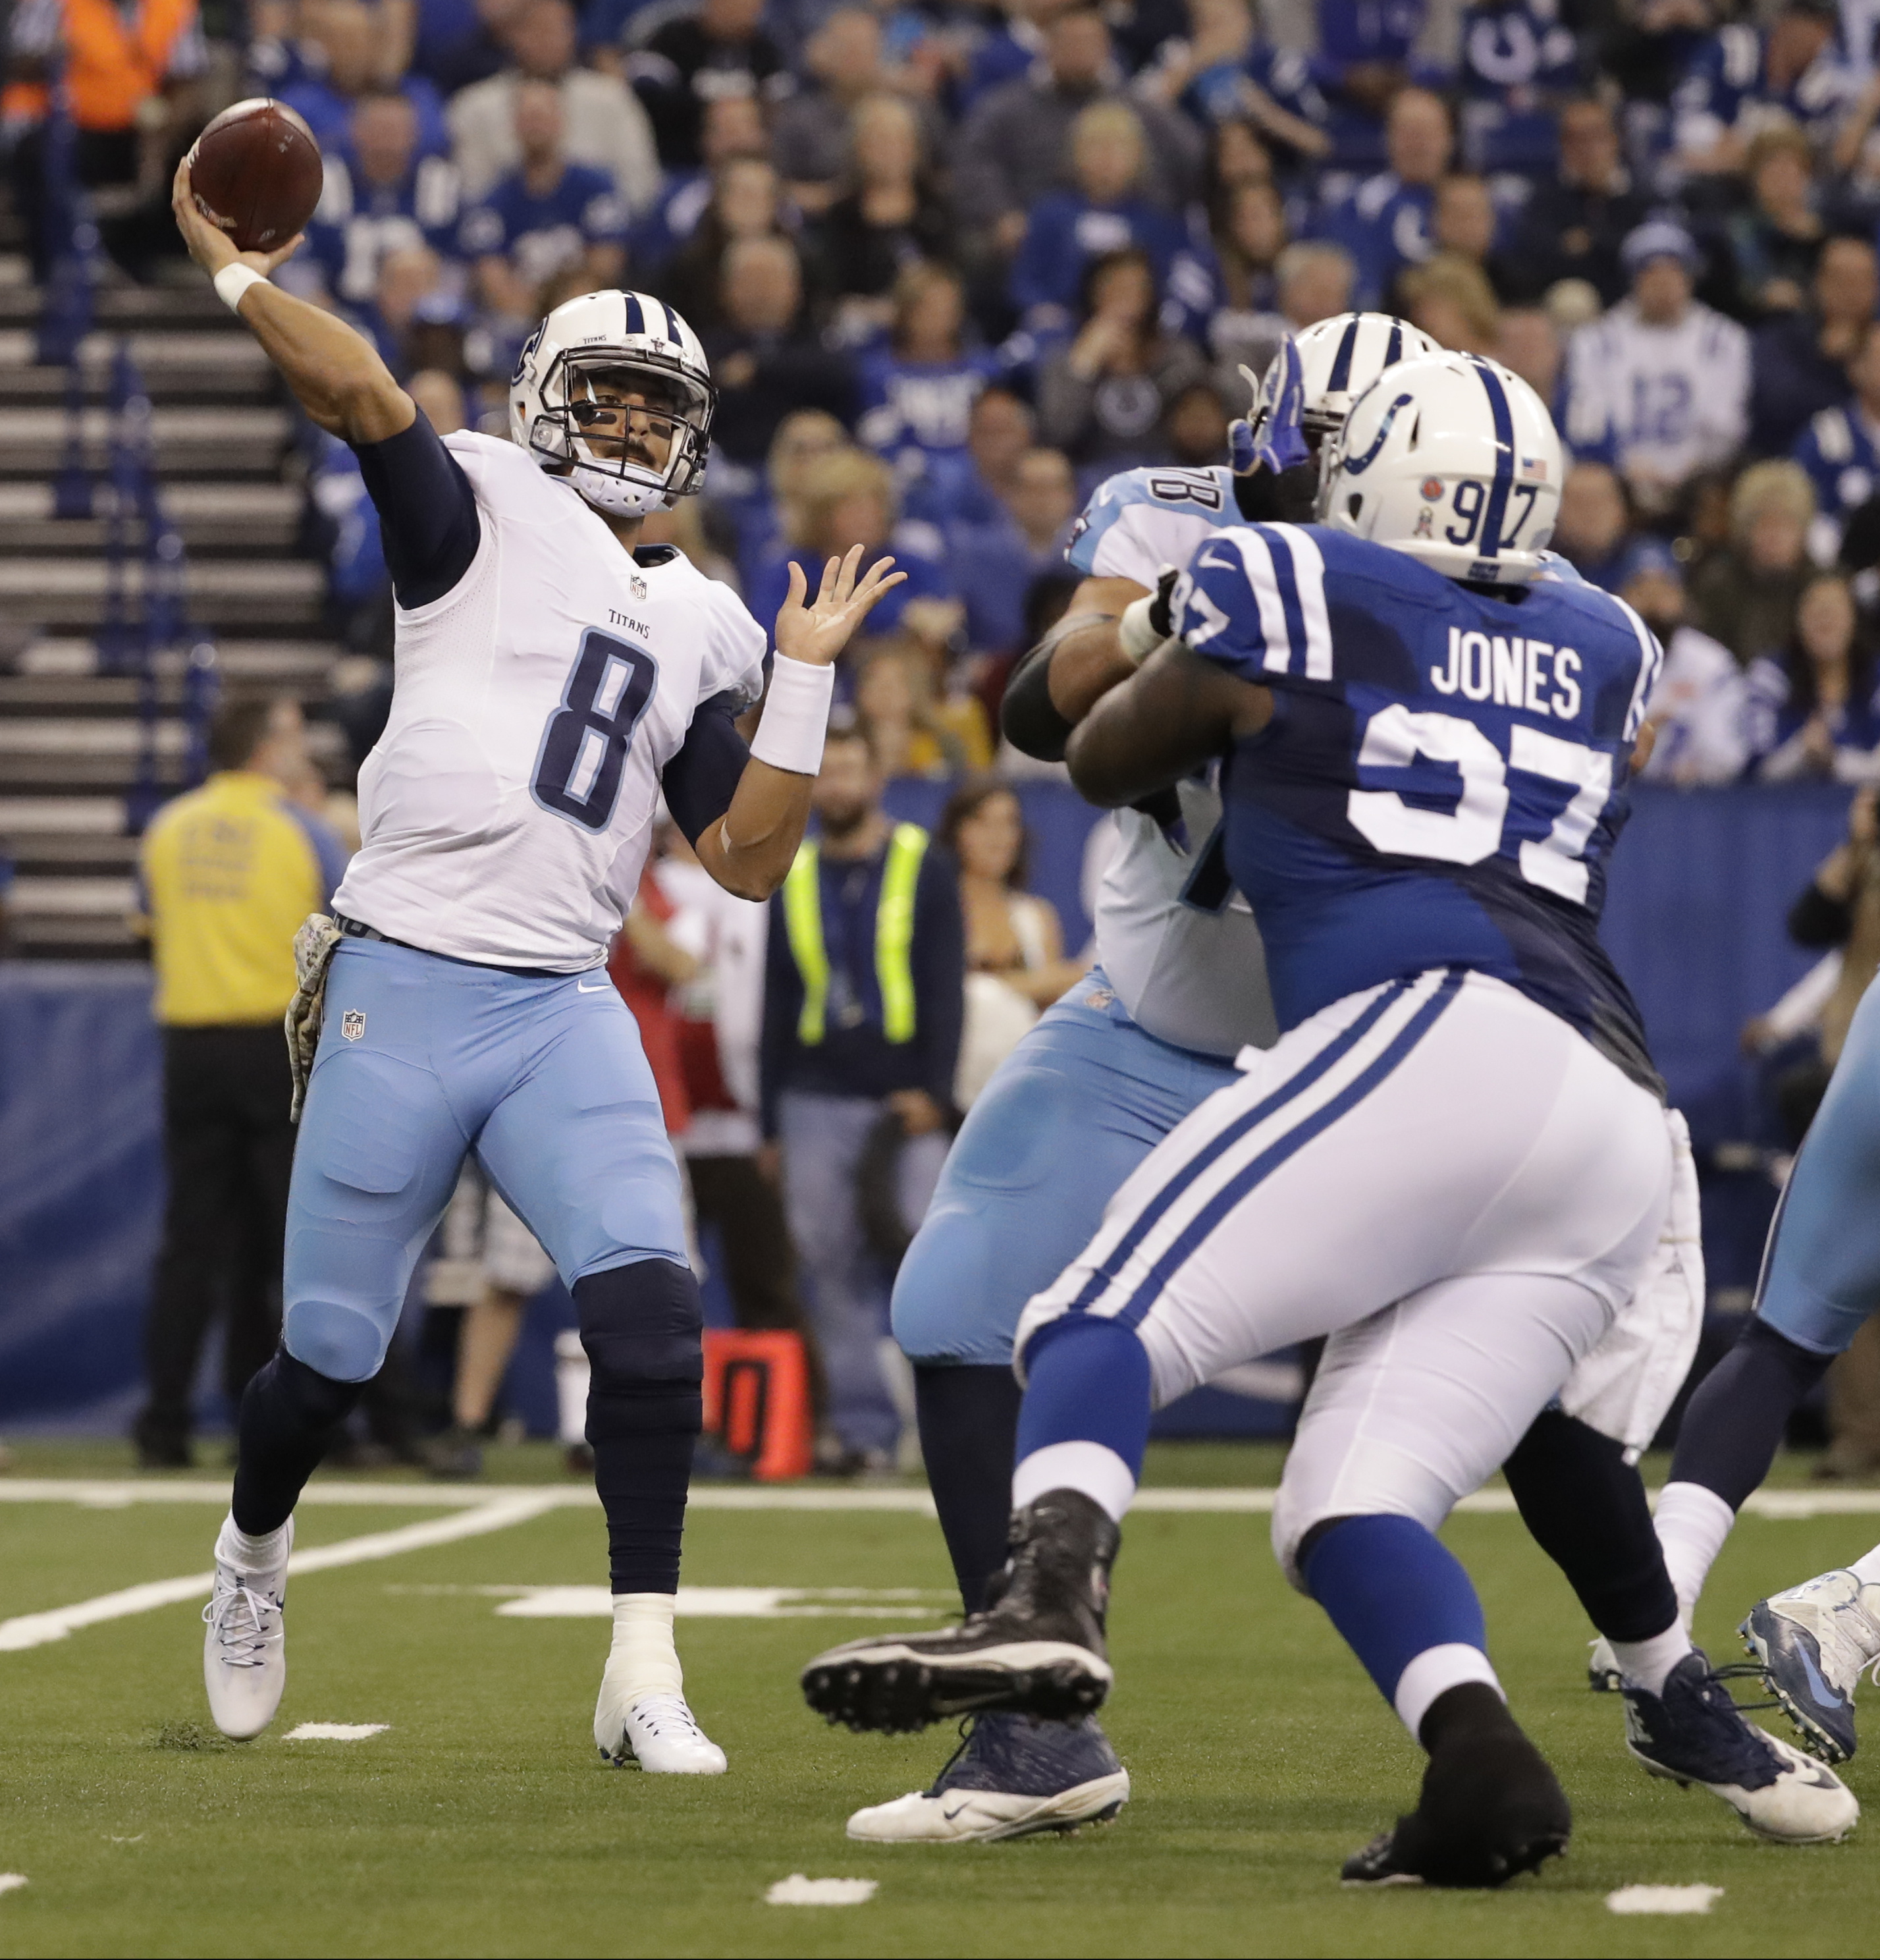 FILE -- In this Nov. 20, 2016, file photo, Tennessee Titans quarterback Marcus Mariota (8) throws against the Indianapolis Colts during an NFL football game in Indianapolis. The Titans have not turned the ball over in two straight games, and wide receiver